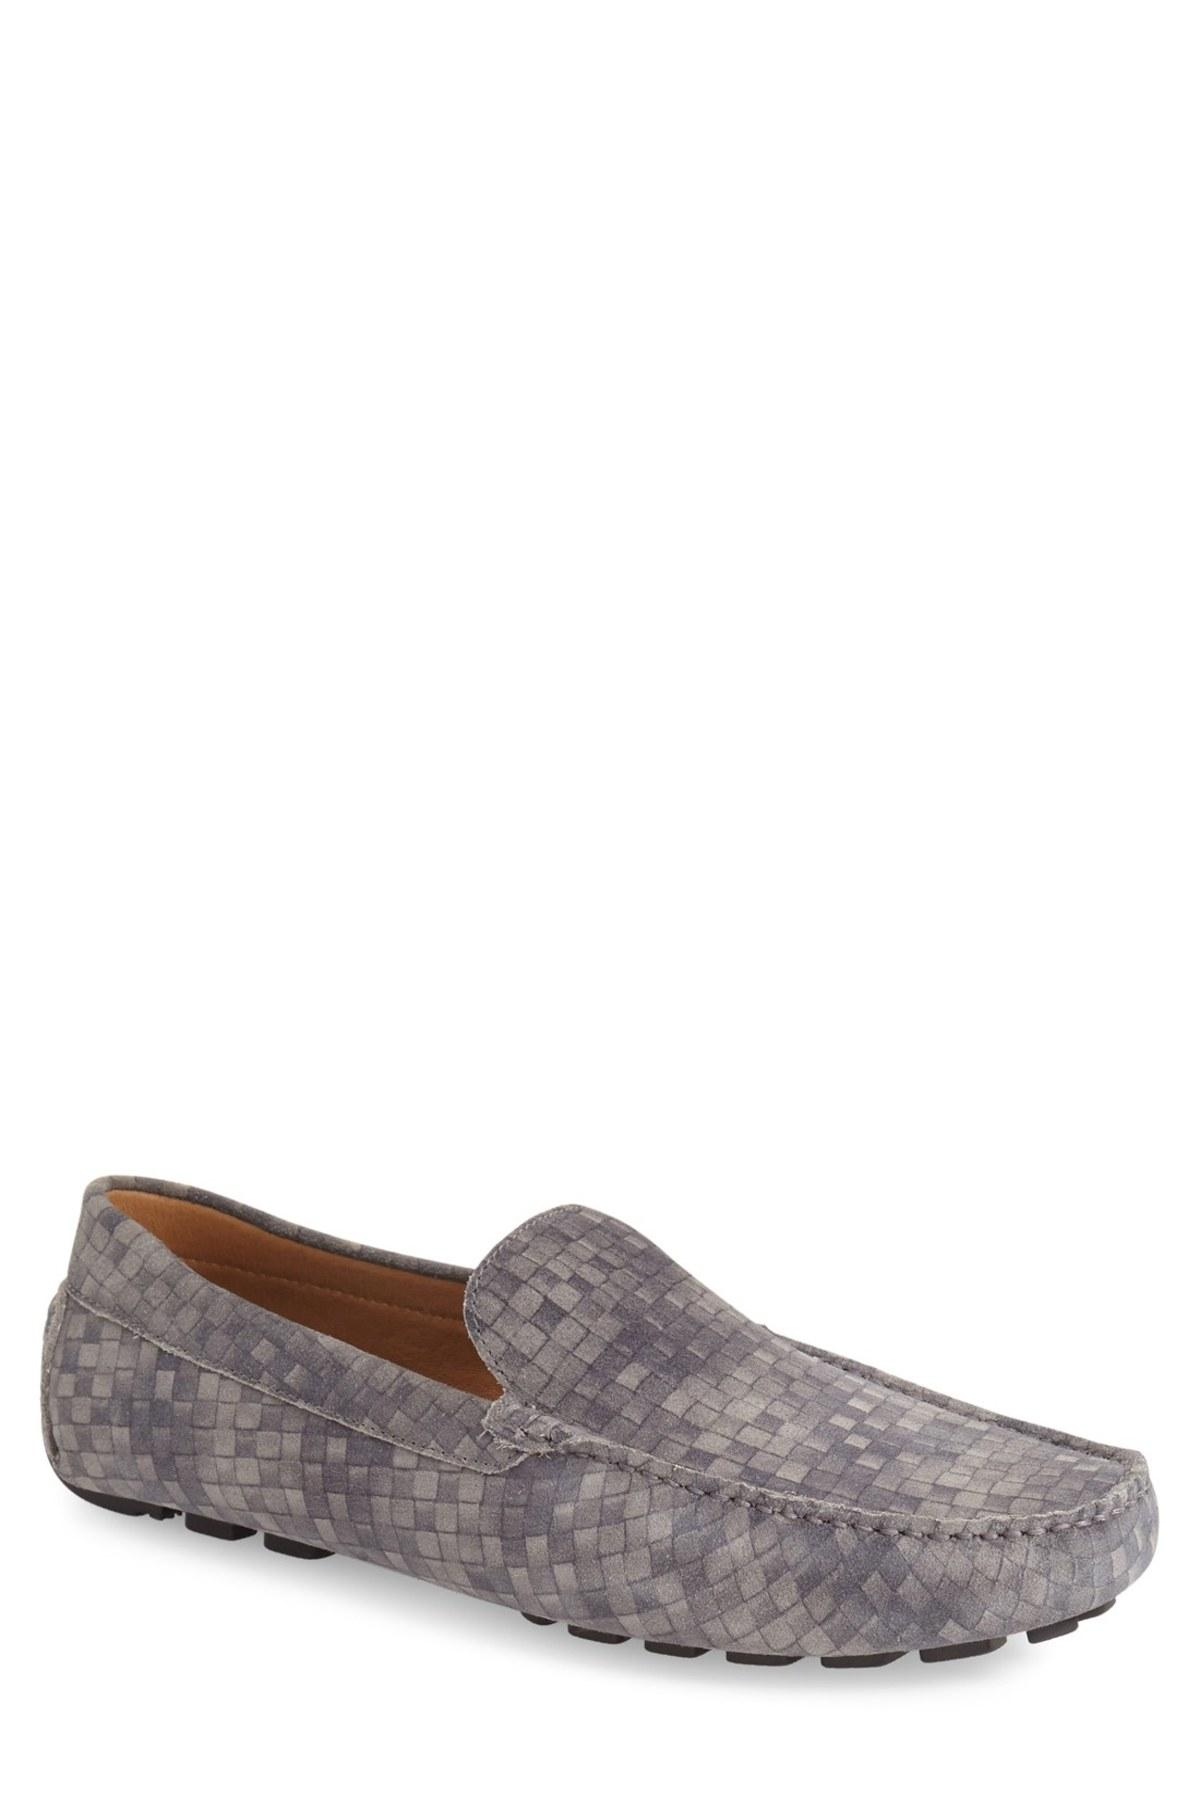 Zanzara U0026#39;davinciu0026#39; Driving Loafer In Gray For Men | Lyst